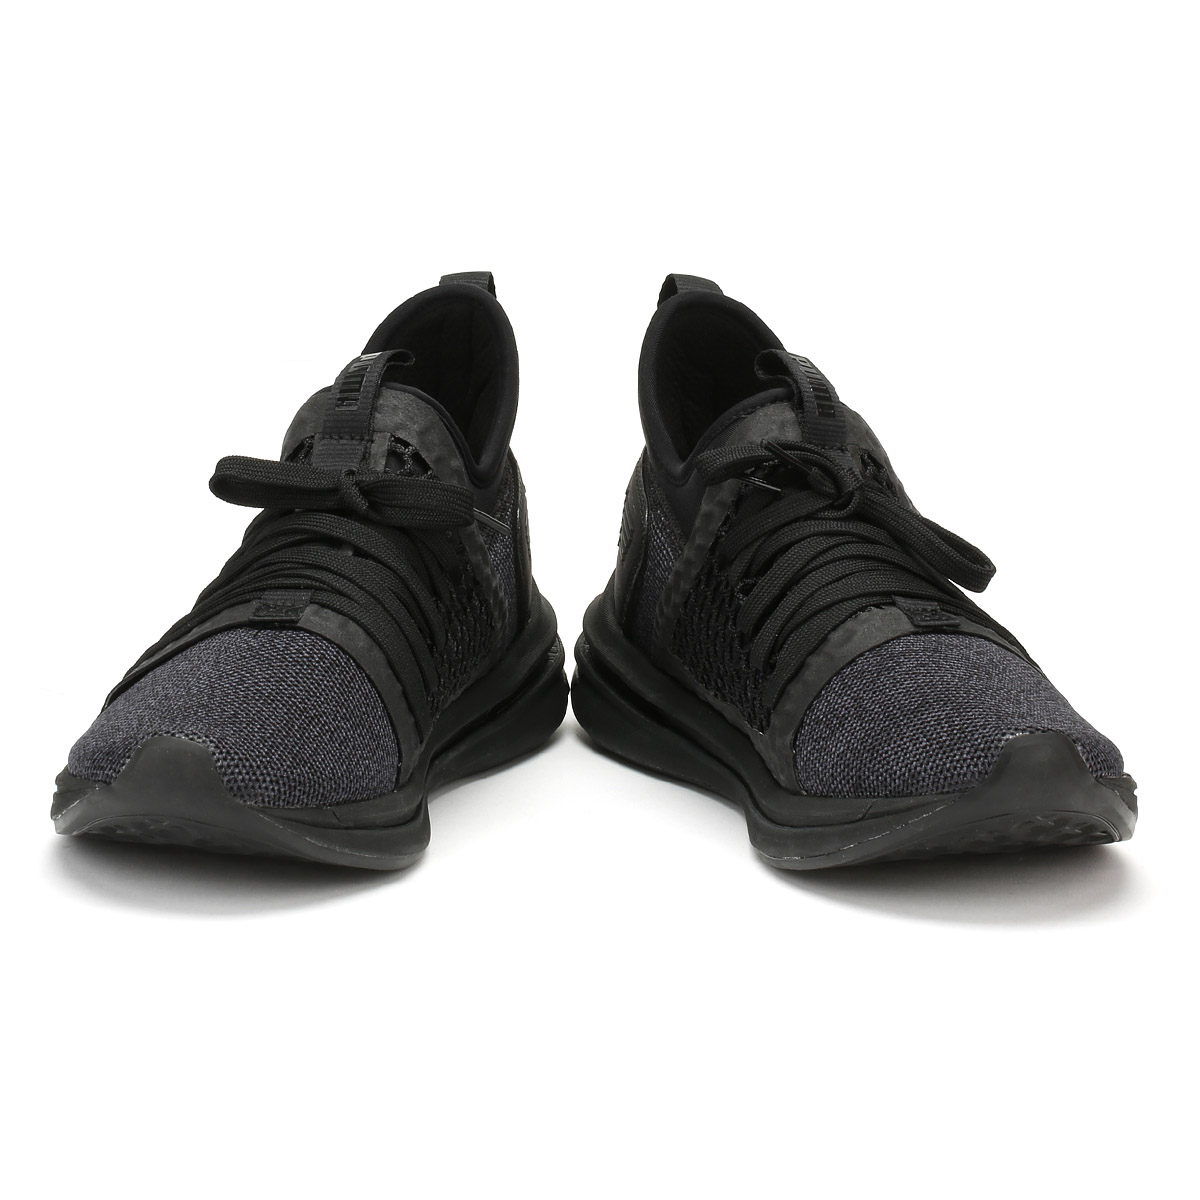 8f1d3a93857 PUMA Mens SR Netfit Trainers Black Ignite Limitless Lace Up Sport Running  Shoes